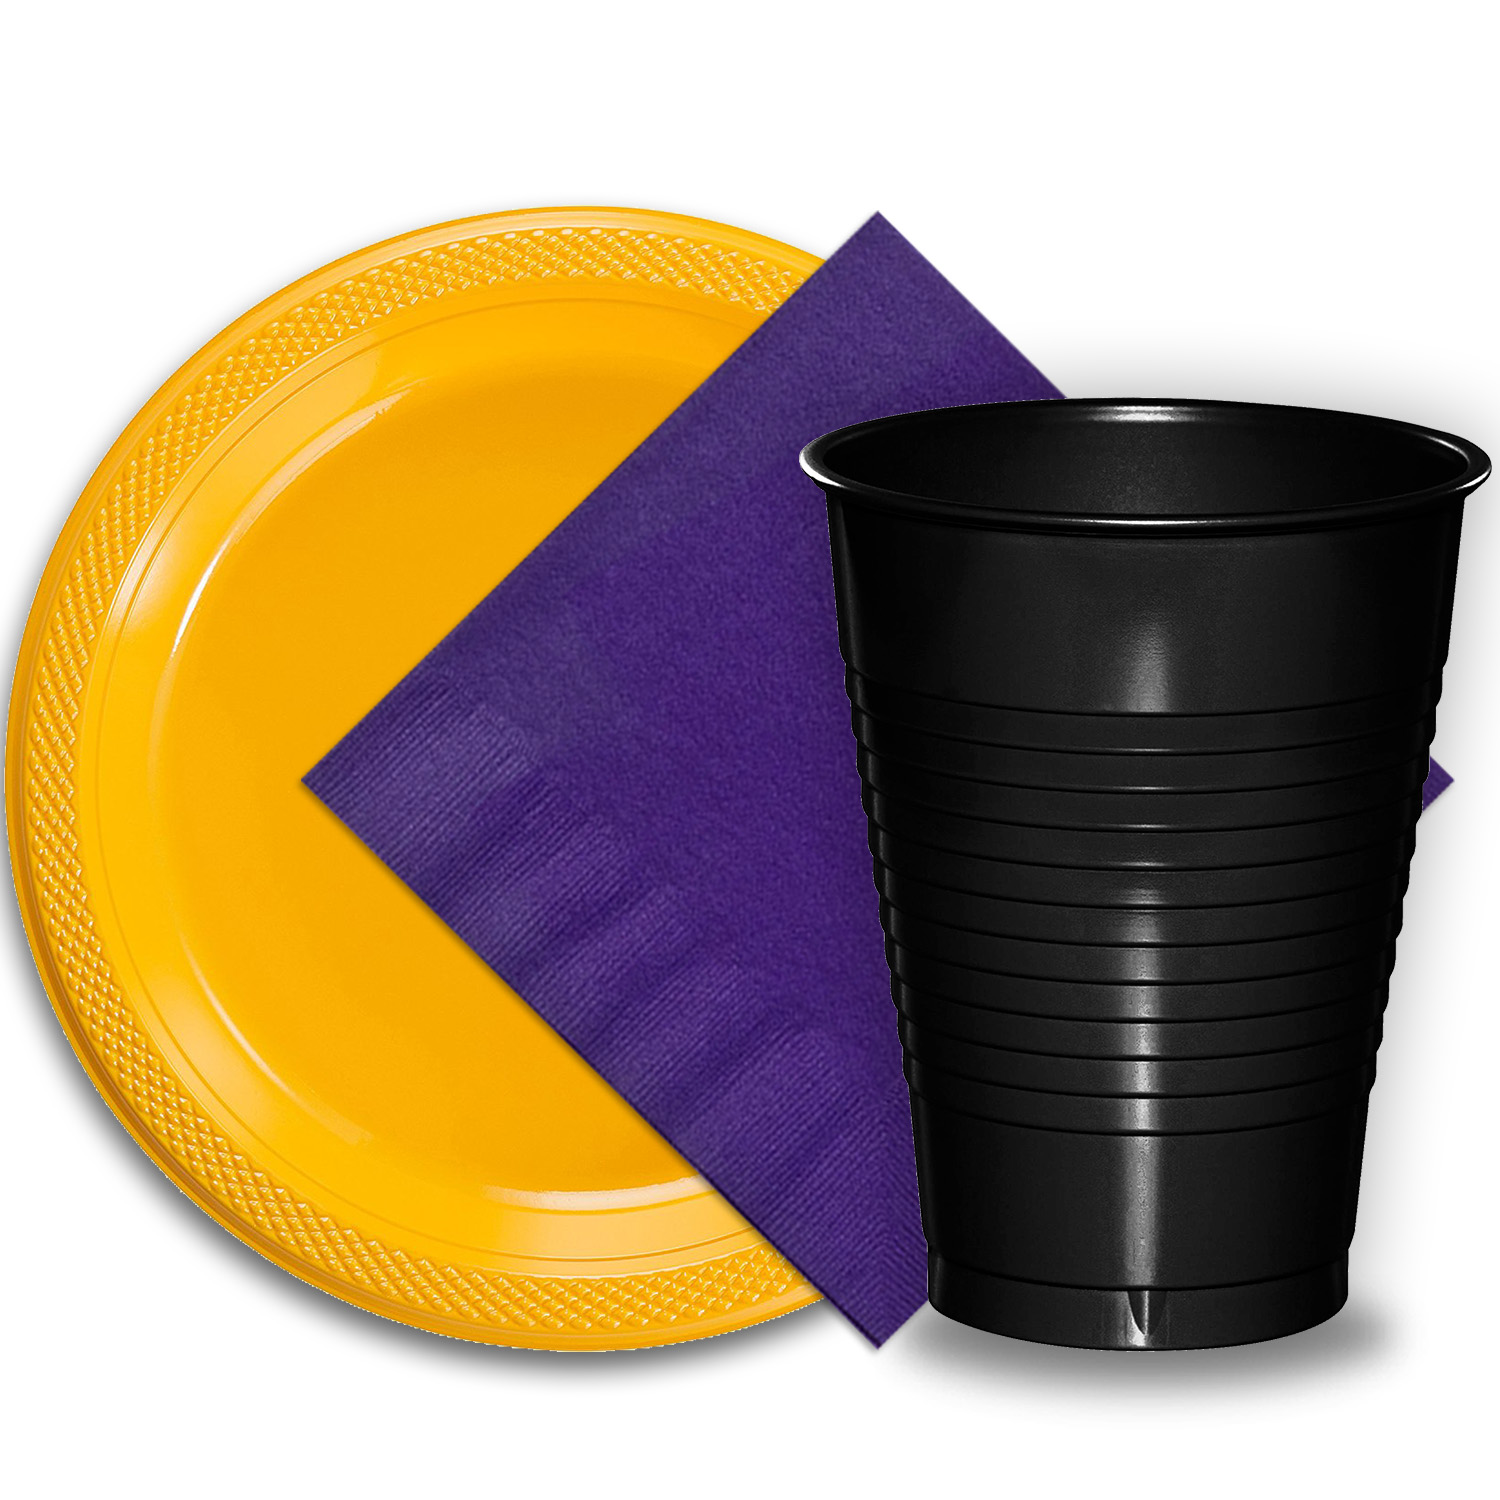 """50 Yellow Plastic Plates (9""""), 50 Black Plastic Cups (12 oz.), and 50 Purple Paper Napkins, Dazzelling Colored Disposable Party Supplies Tableware Set for Fifty Guests."""